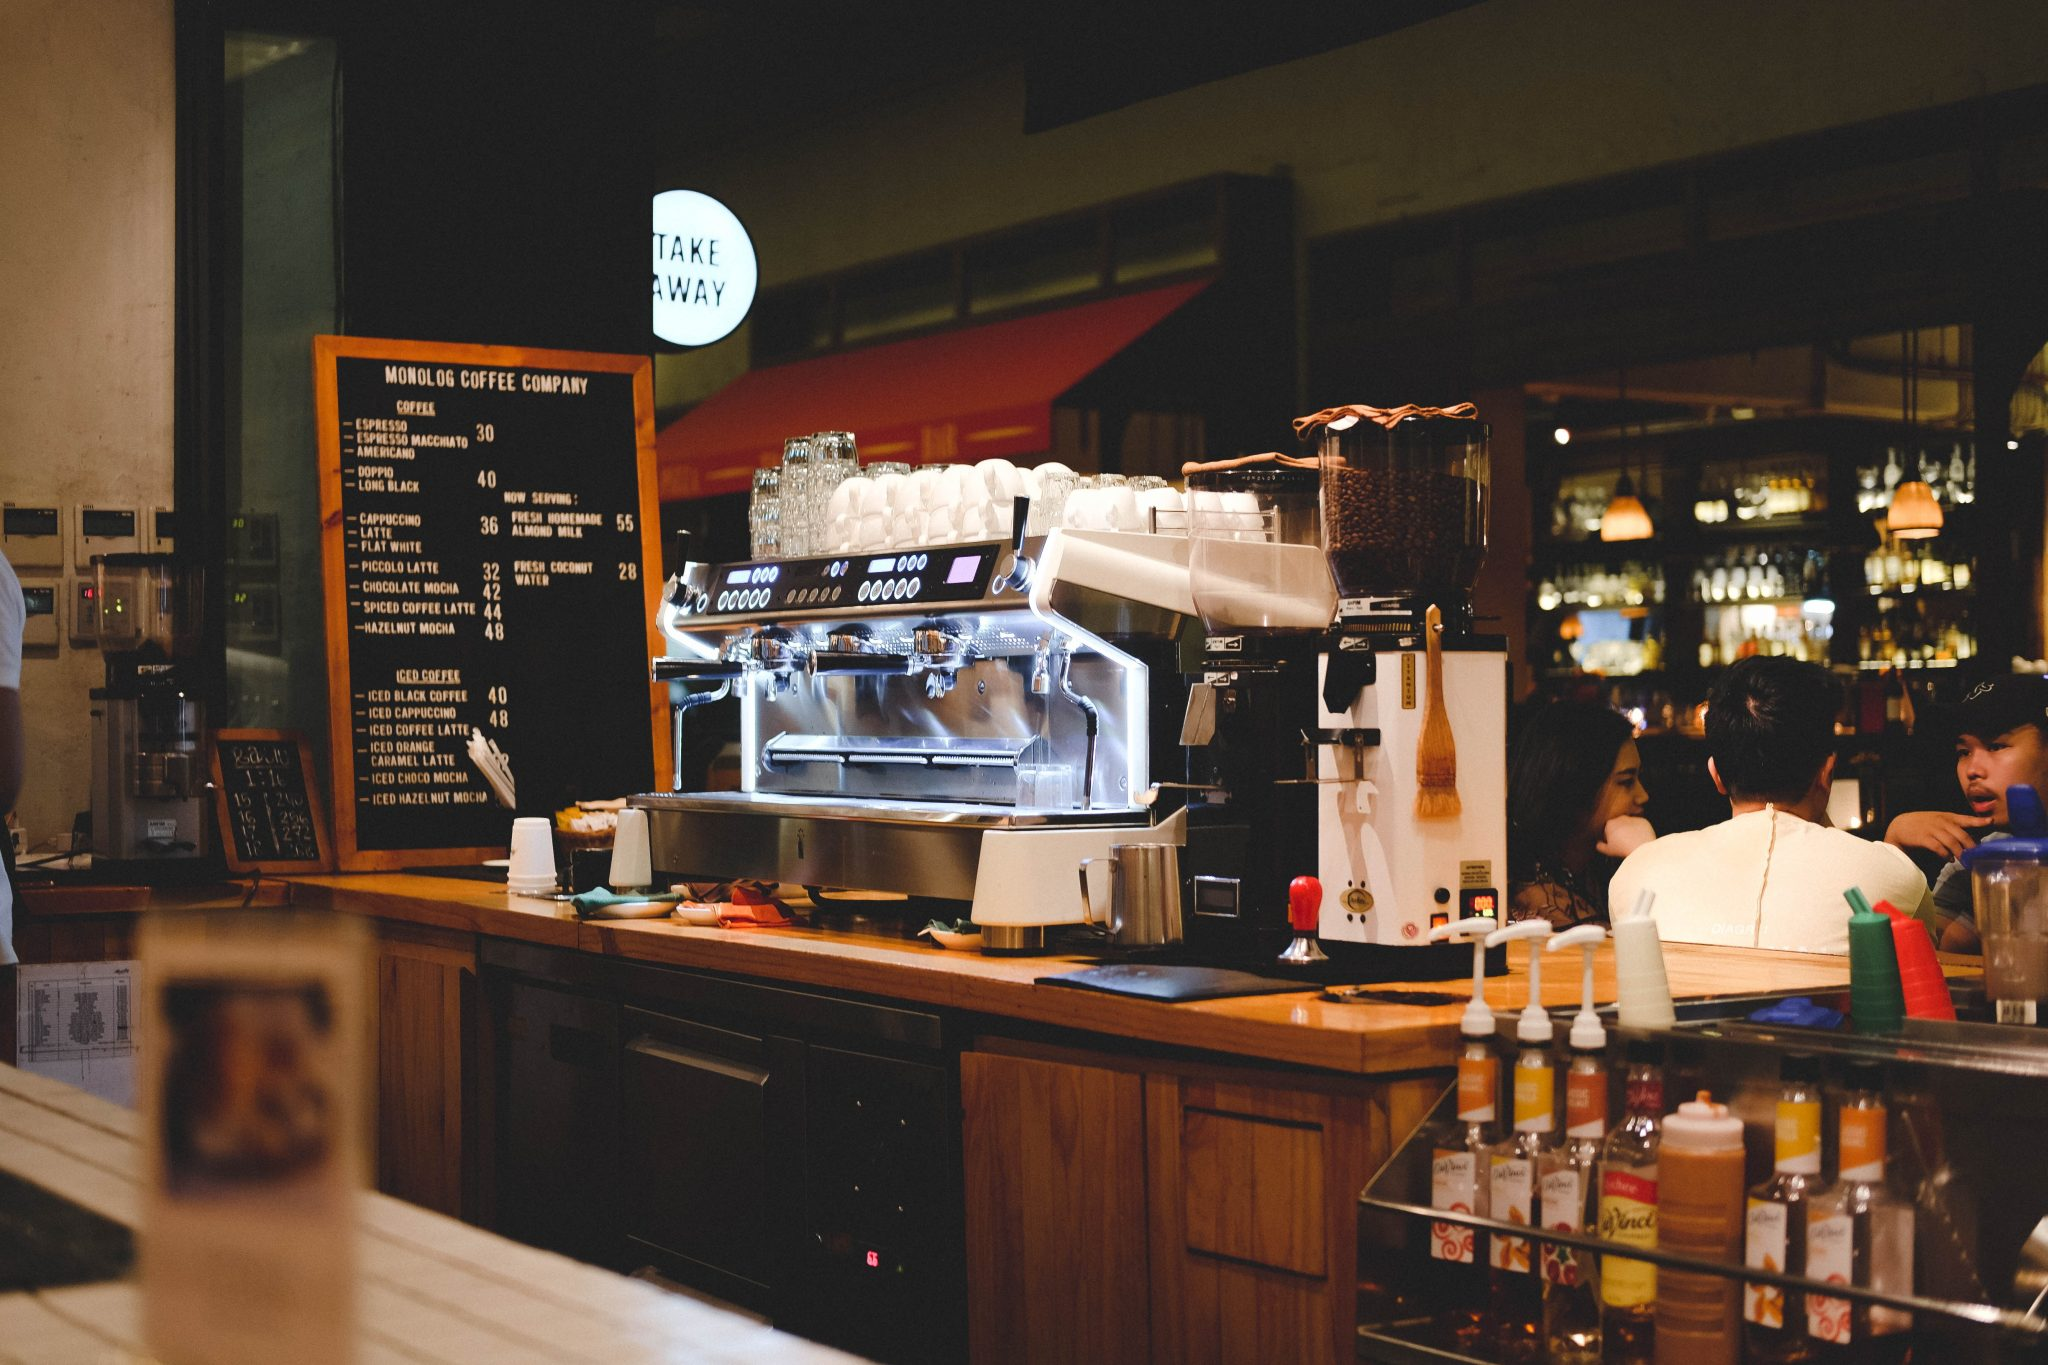 Coffee-shop_firza-pratama-682602-unsplash